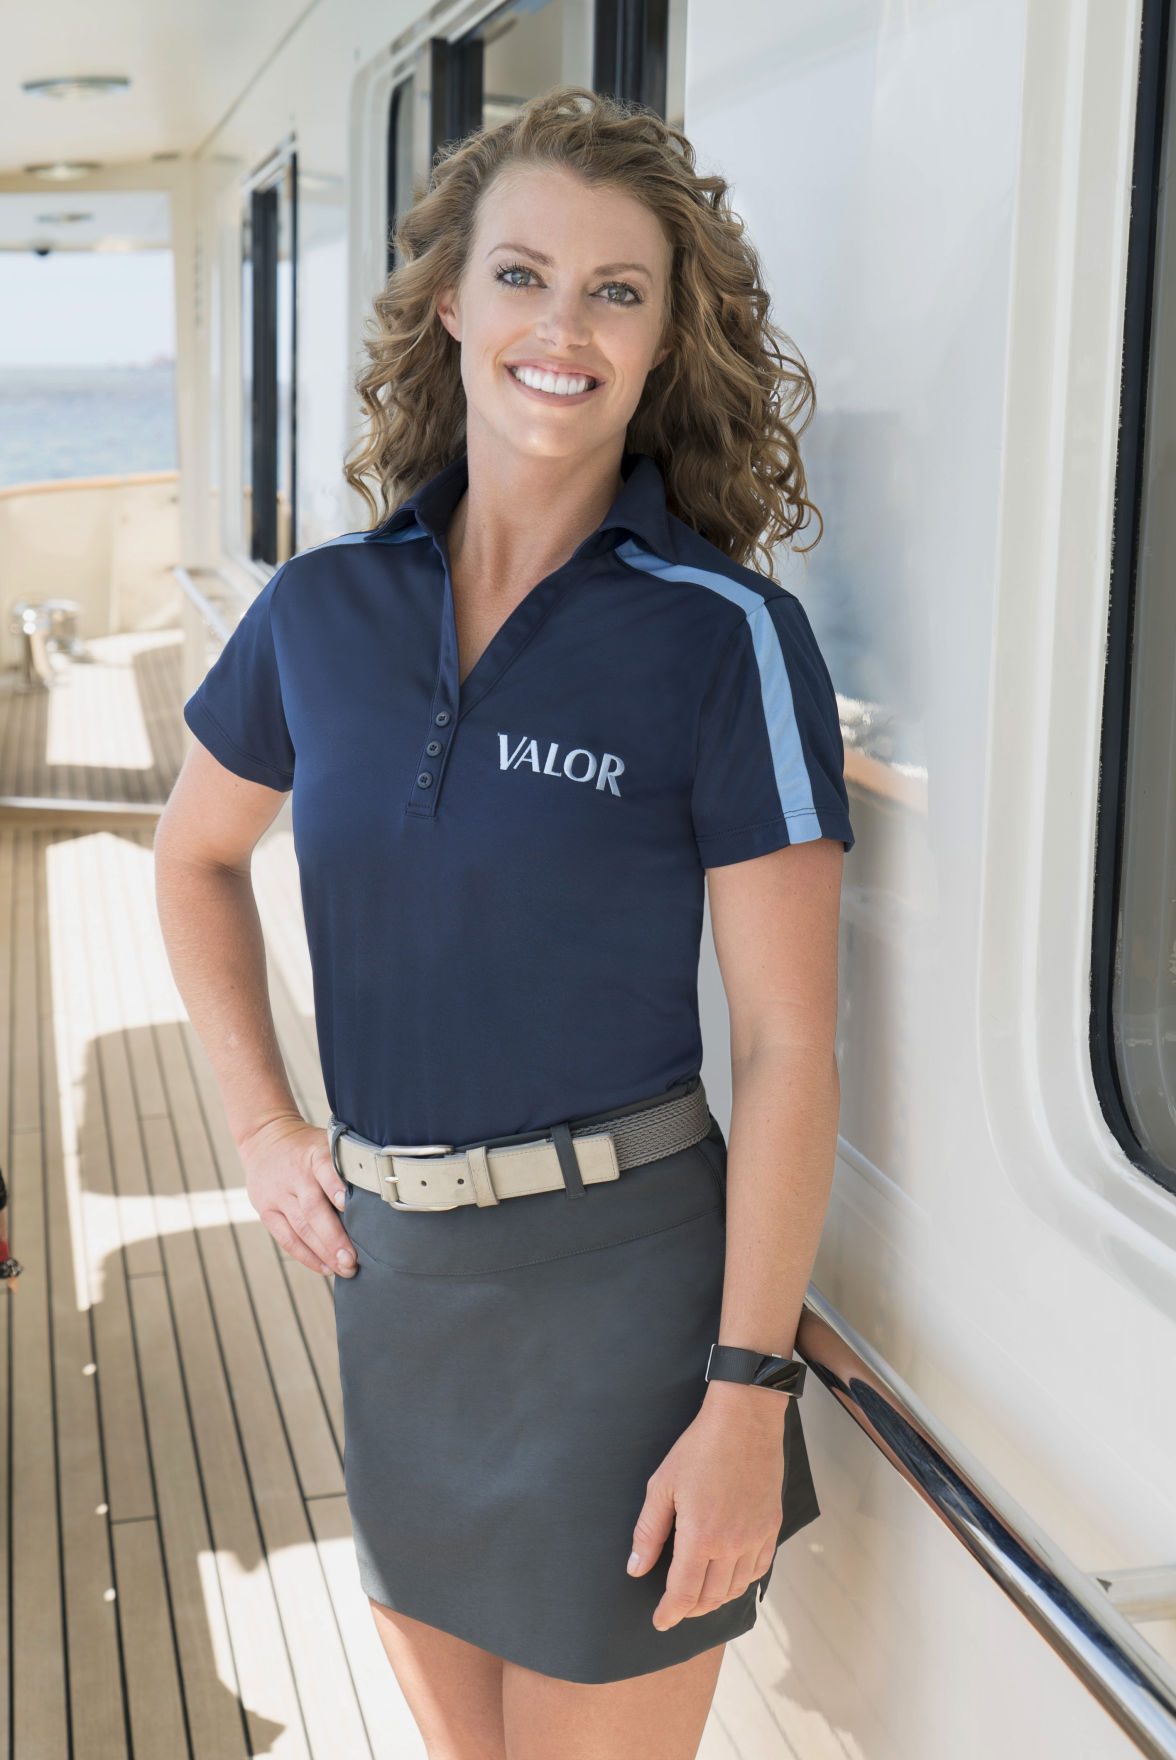 Charleston Resident Baker Manning Sets Sail As New Cast Member On Bravo U0026 39 S  U0026 39 Below Deck U0026 39  Reality